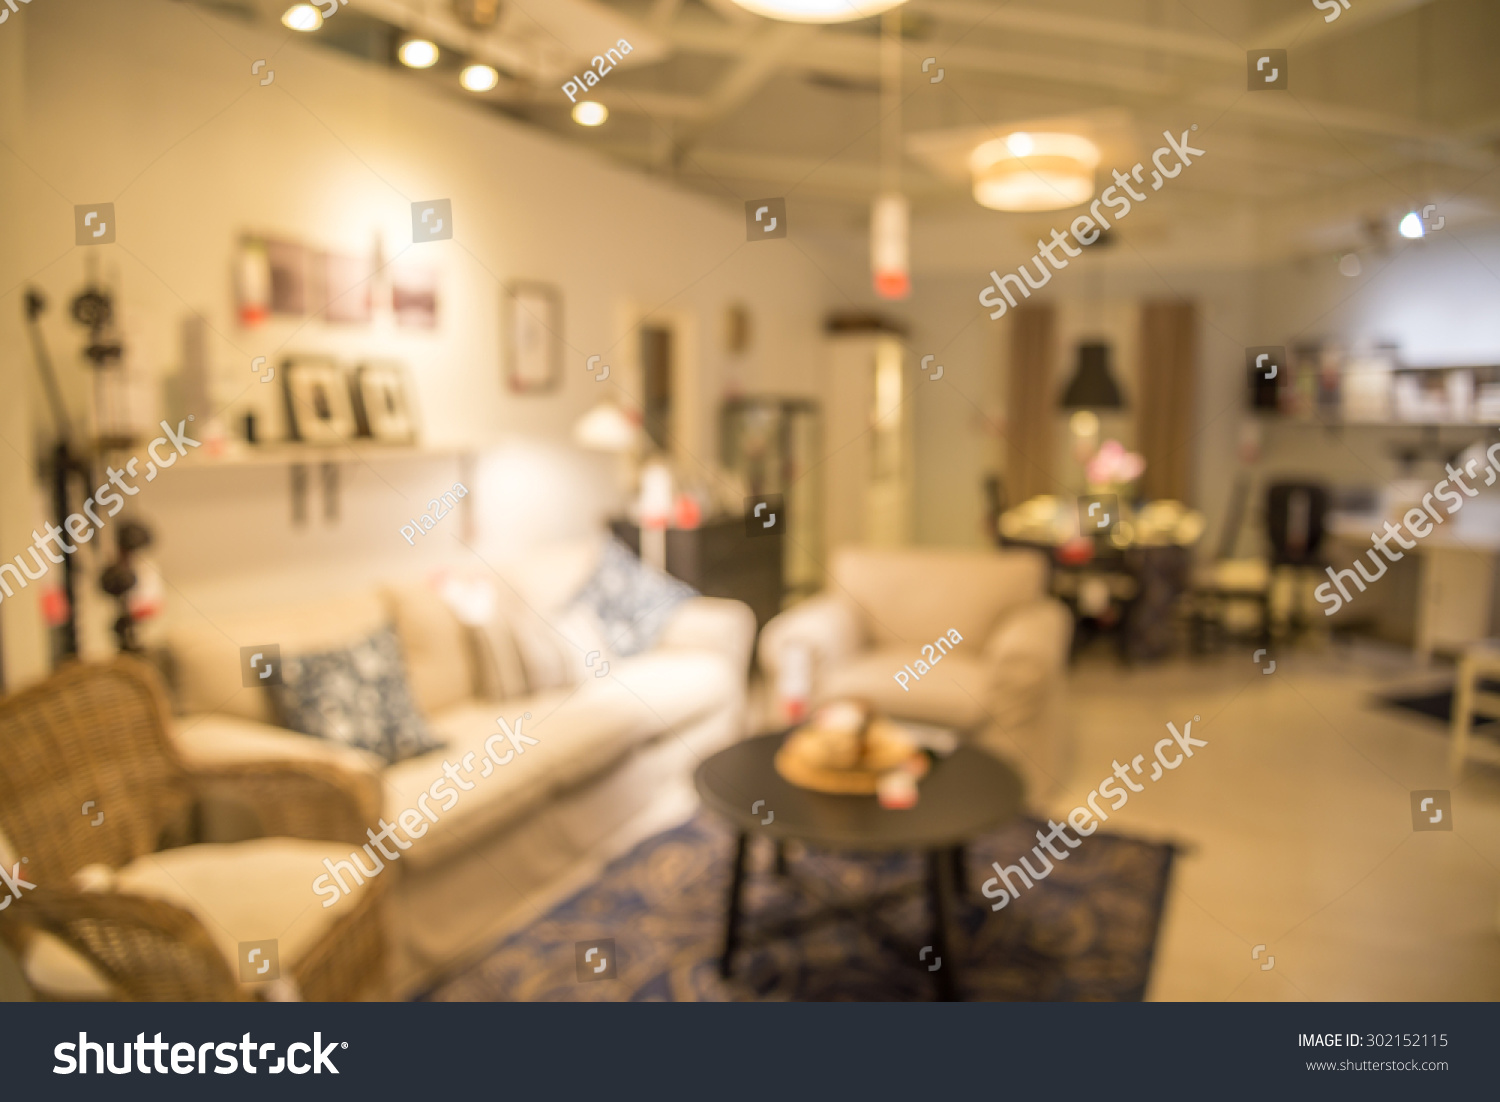 Abstract blurred furniture home decor store background. Abstract Blurred Furniture Home Decor Store Stock Photo 302152115